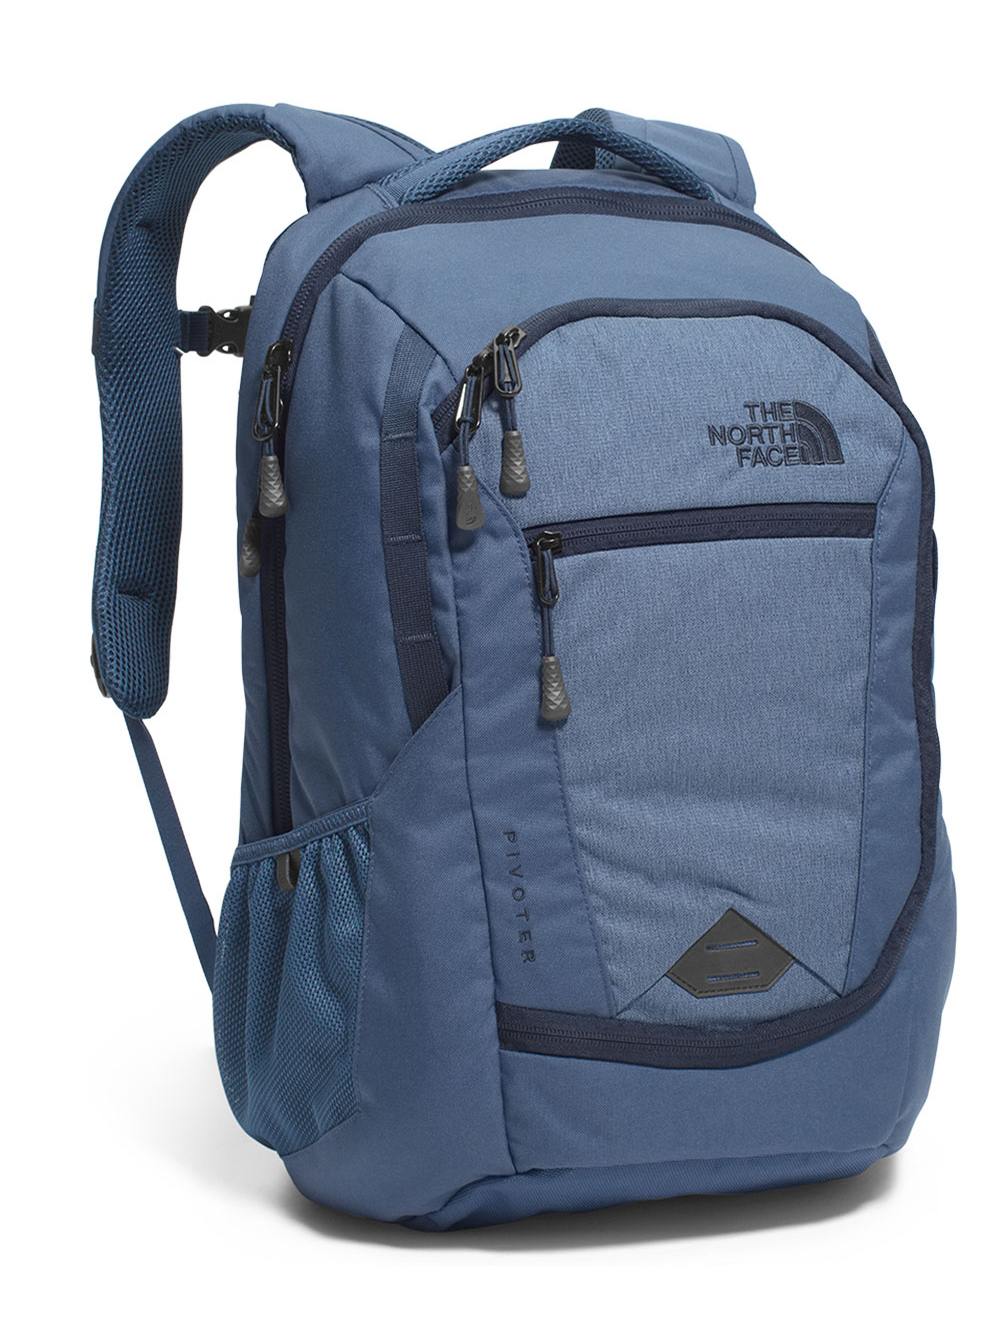 The North Face Pivoter Backpack - shady blue heather/urban navy, one size